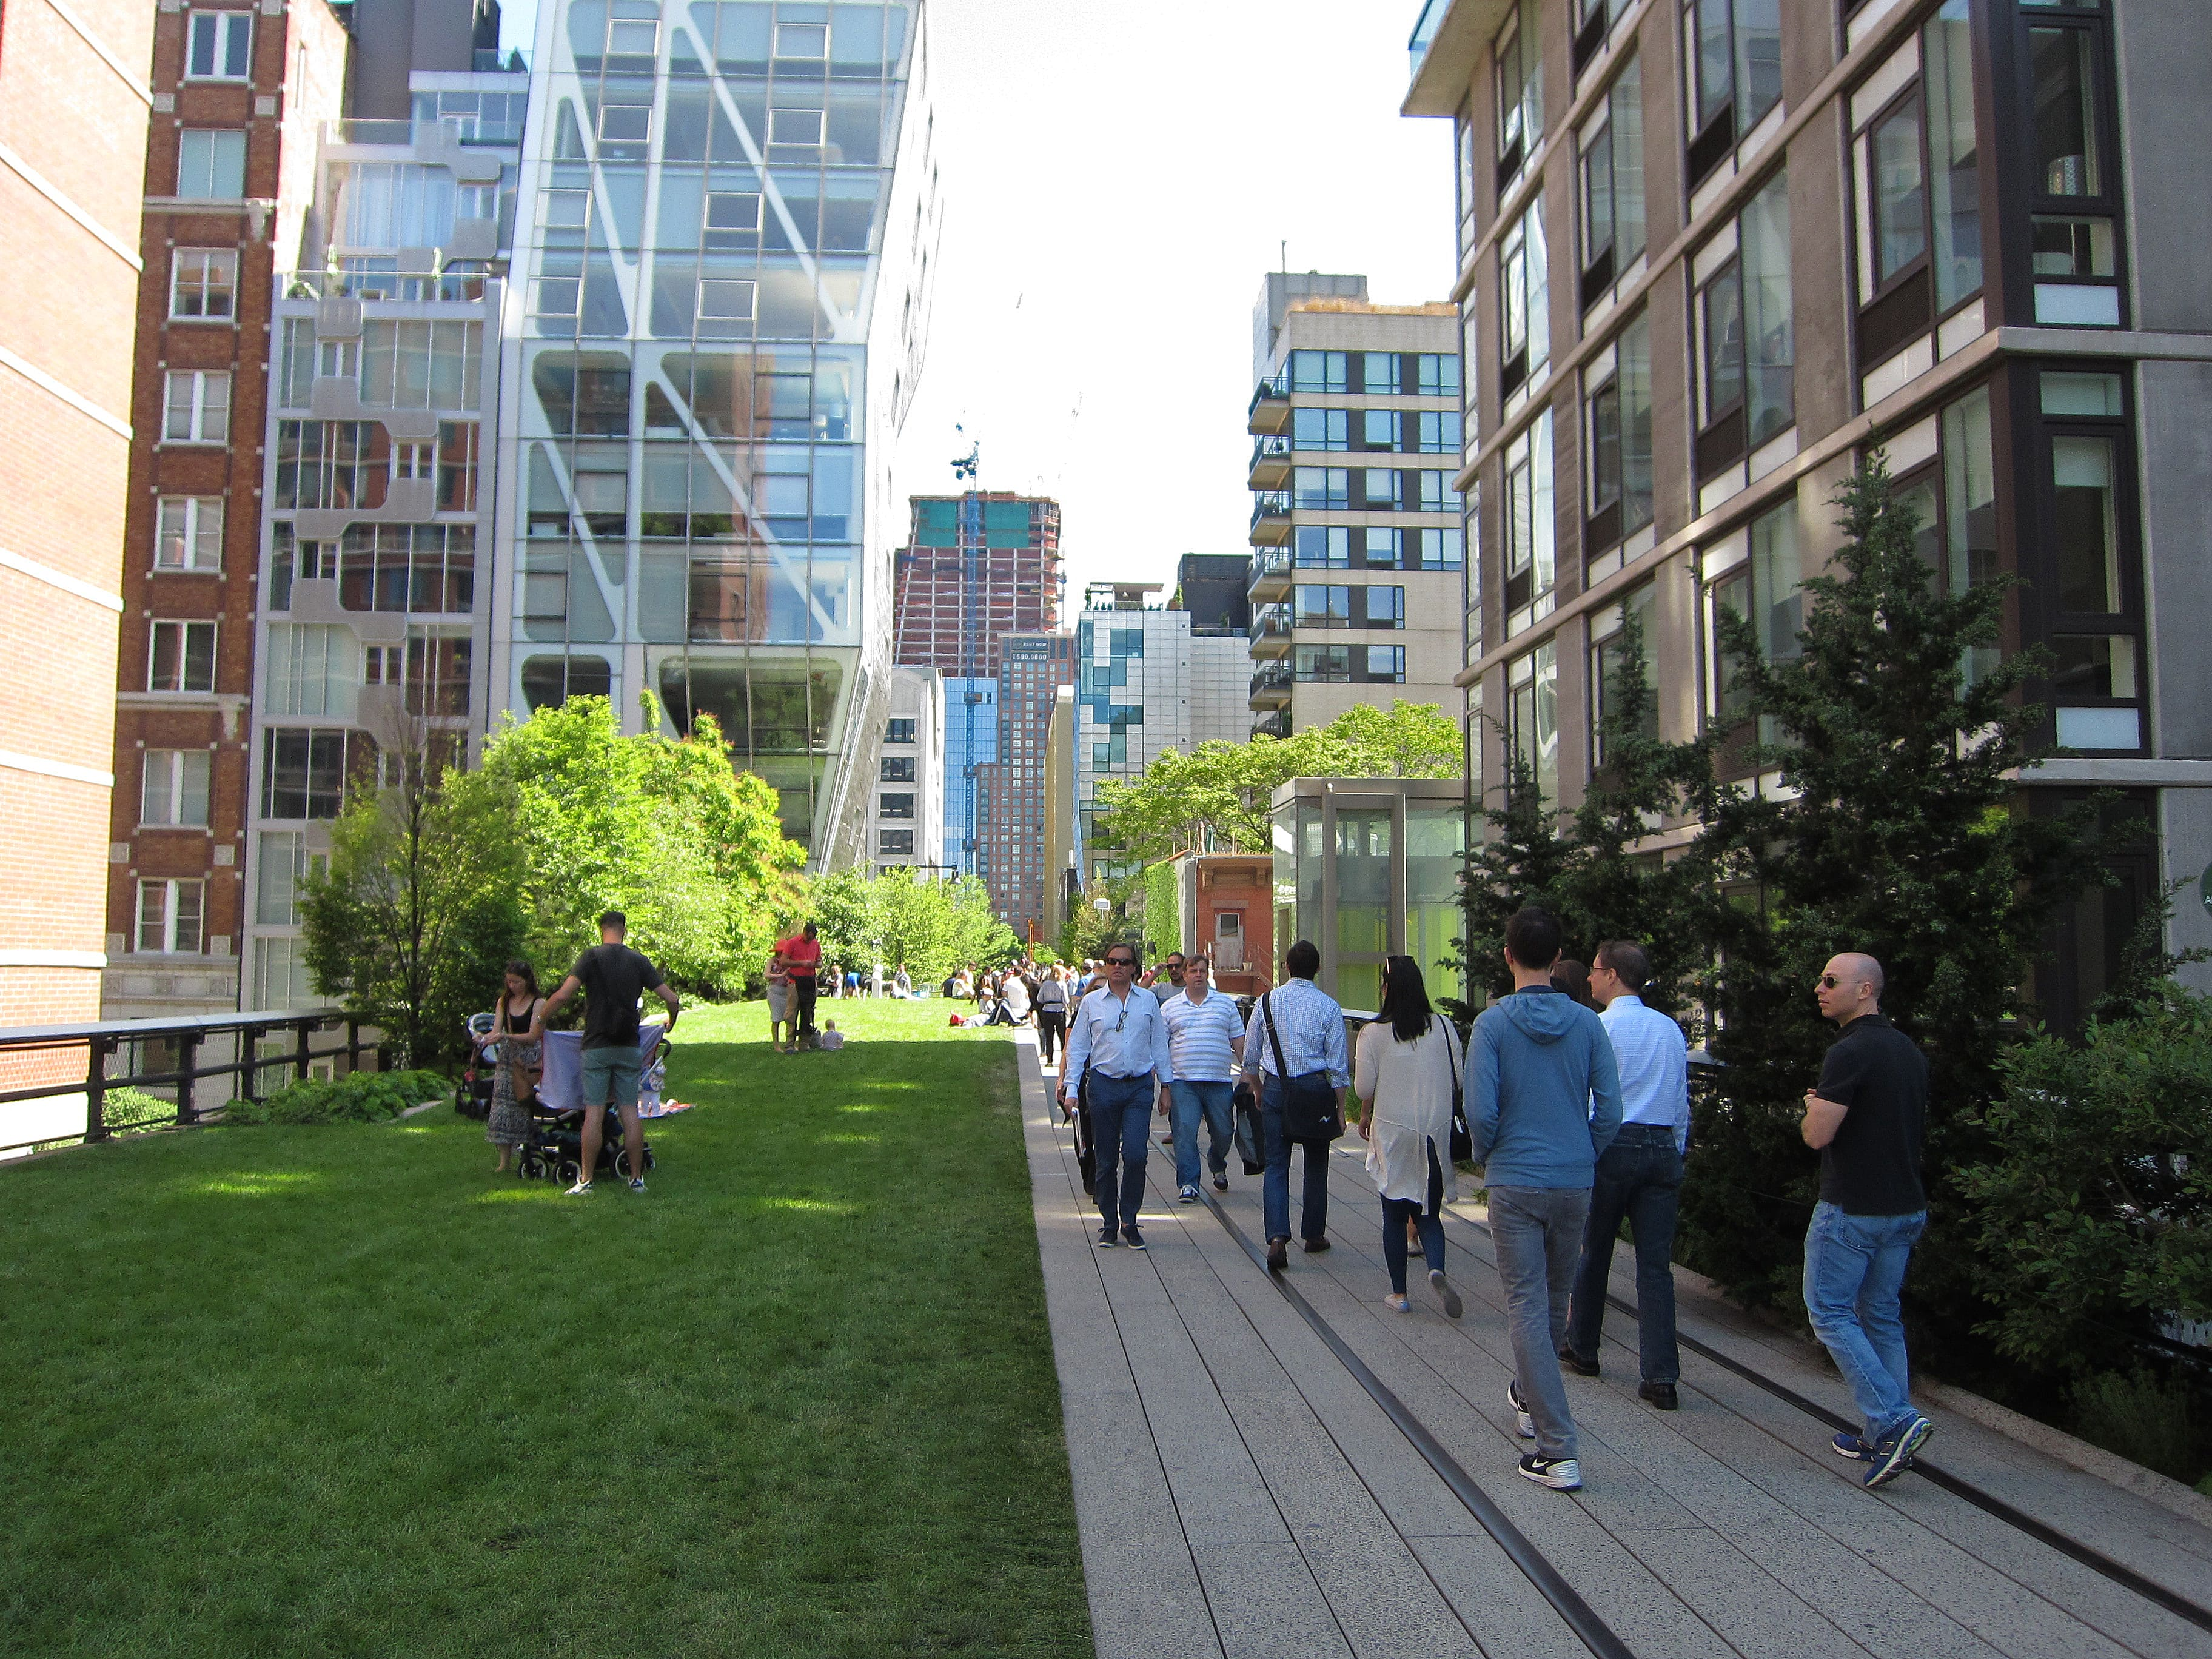 The High Line in Chelsea is an awesome place to visit in New York City